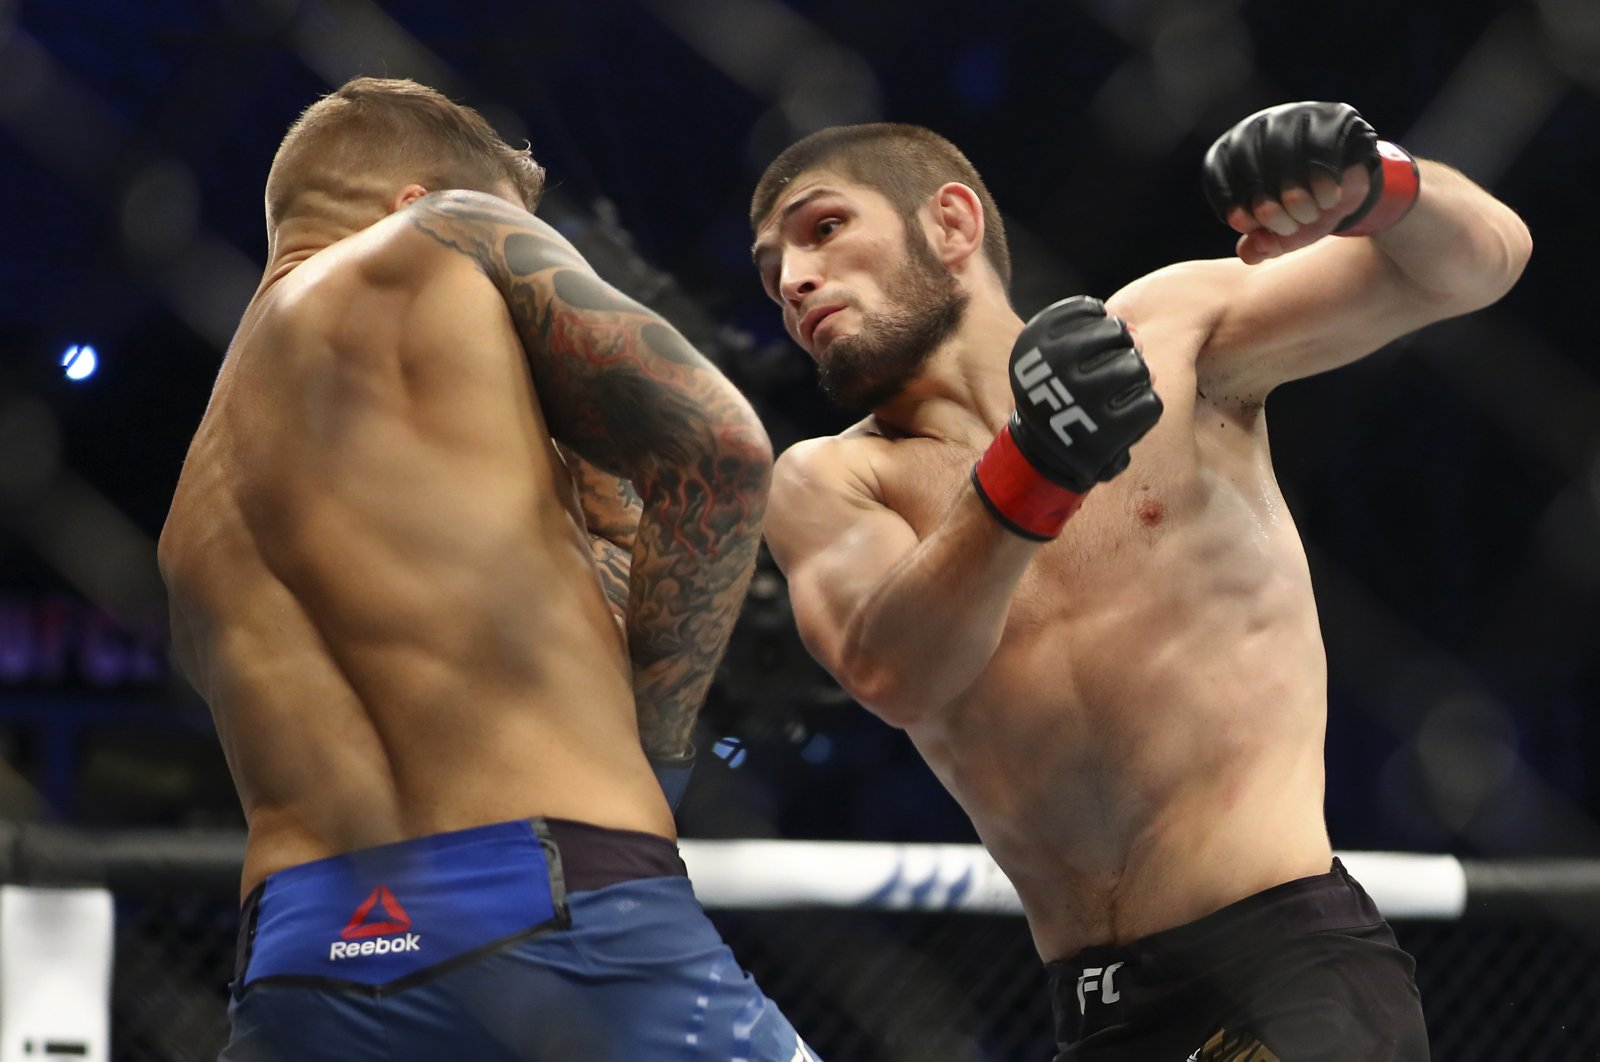 Khabib Nurmagomedov (R) fights Dustin Poirier at UFC 242, in Abu Dhabi, UAE, Sept. 7, 2019. (AP Photo)